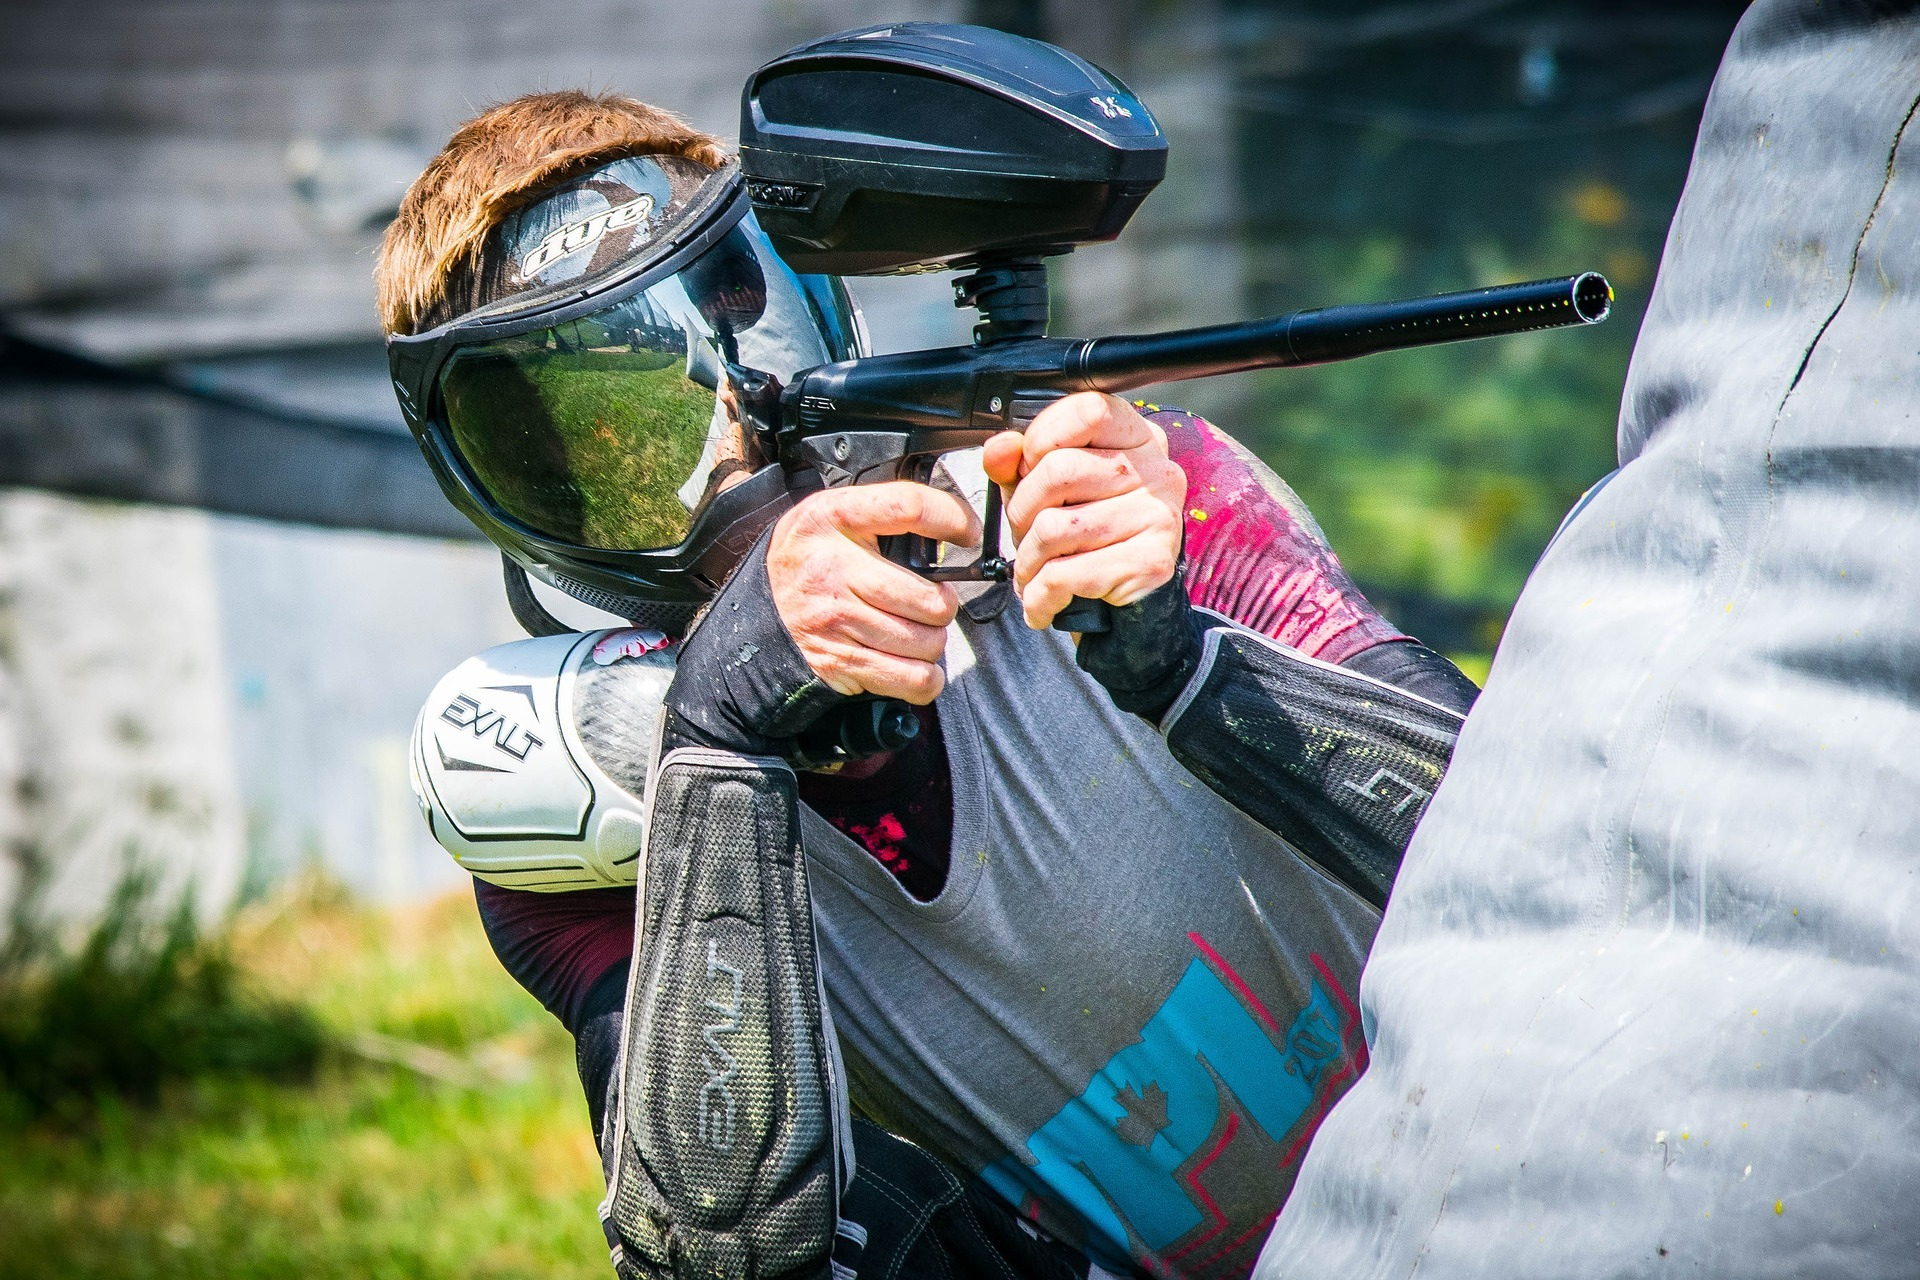 paintball player firing her gear from the paintball gun case